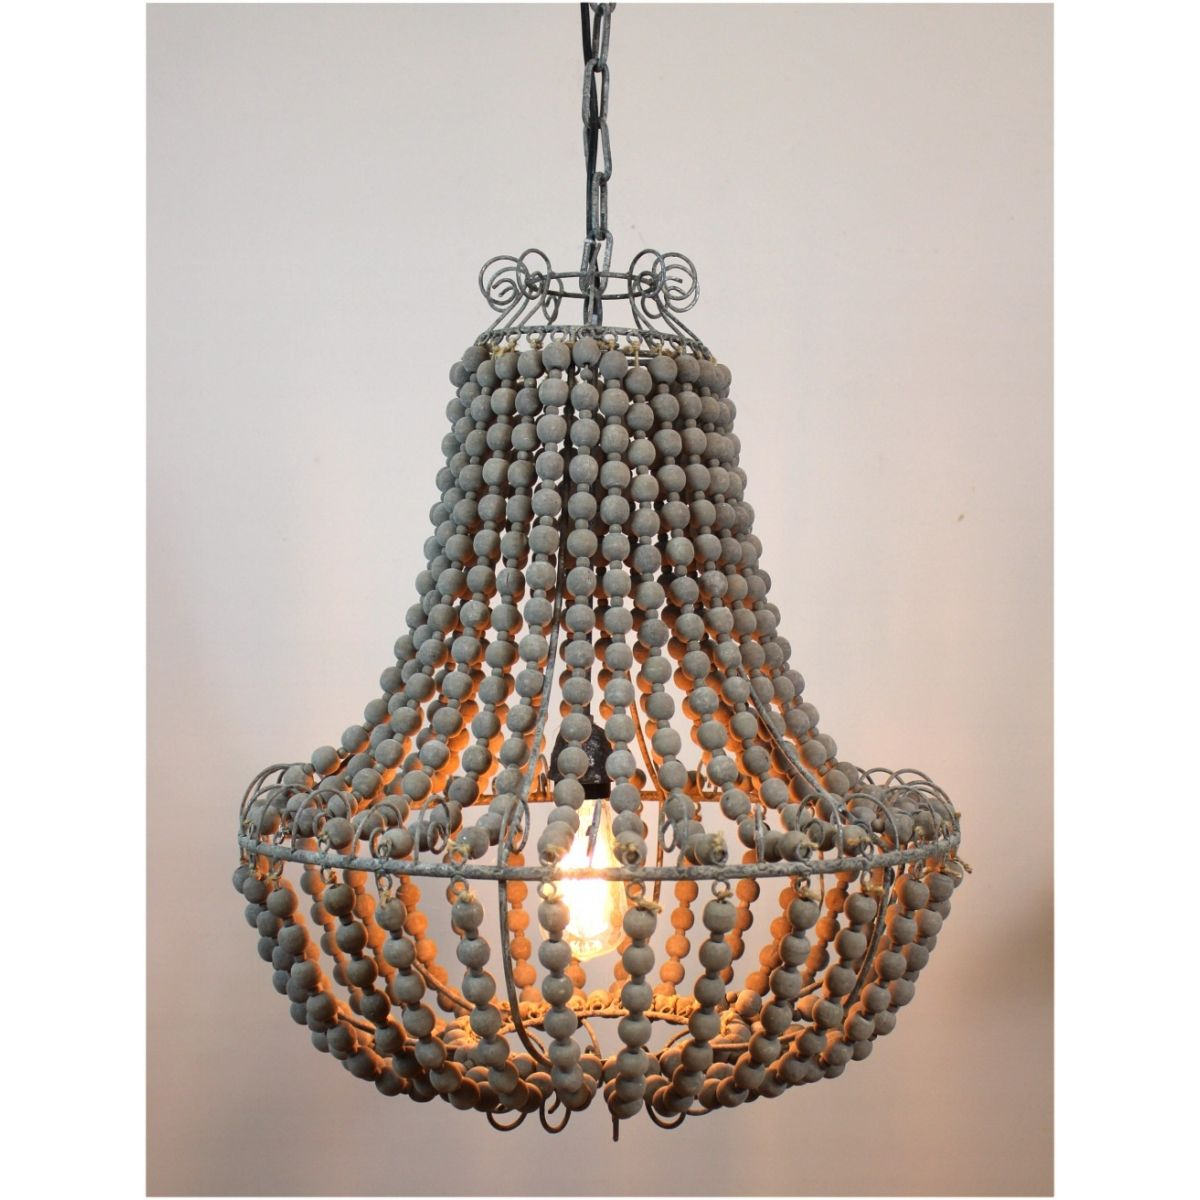 Charming Aged Wooden Beaded Big Chandelier Hand Made Lighting Fixture Ceiling  Mounted Vintage Style